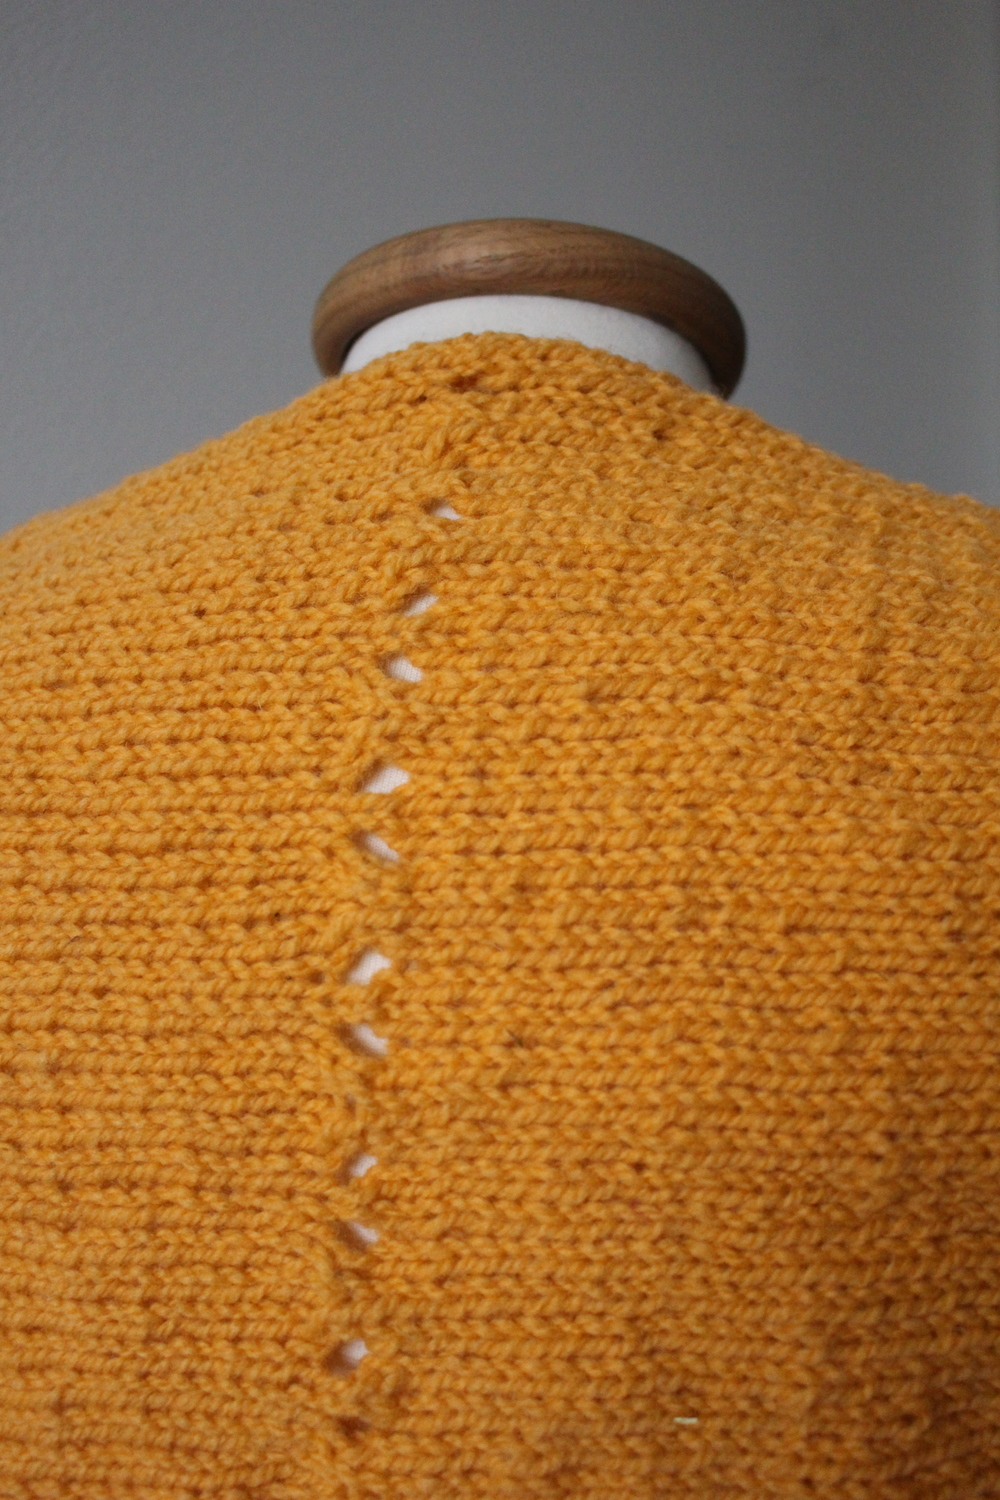 Simple lace stitch pattern on Sunrise Shrug by Sustain My Craft Habit